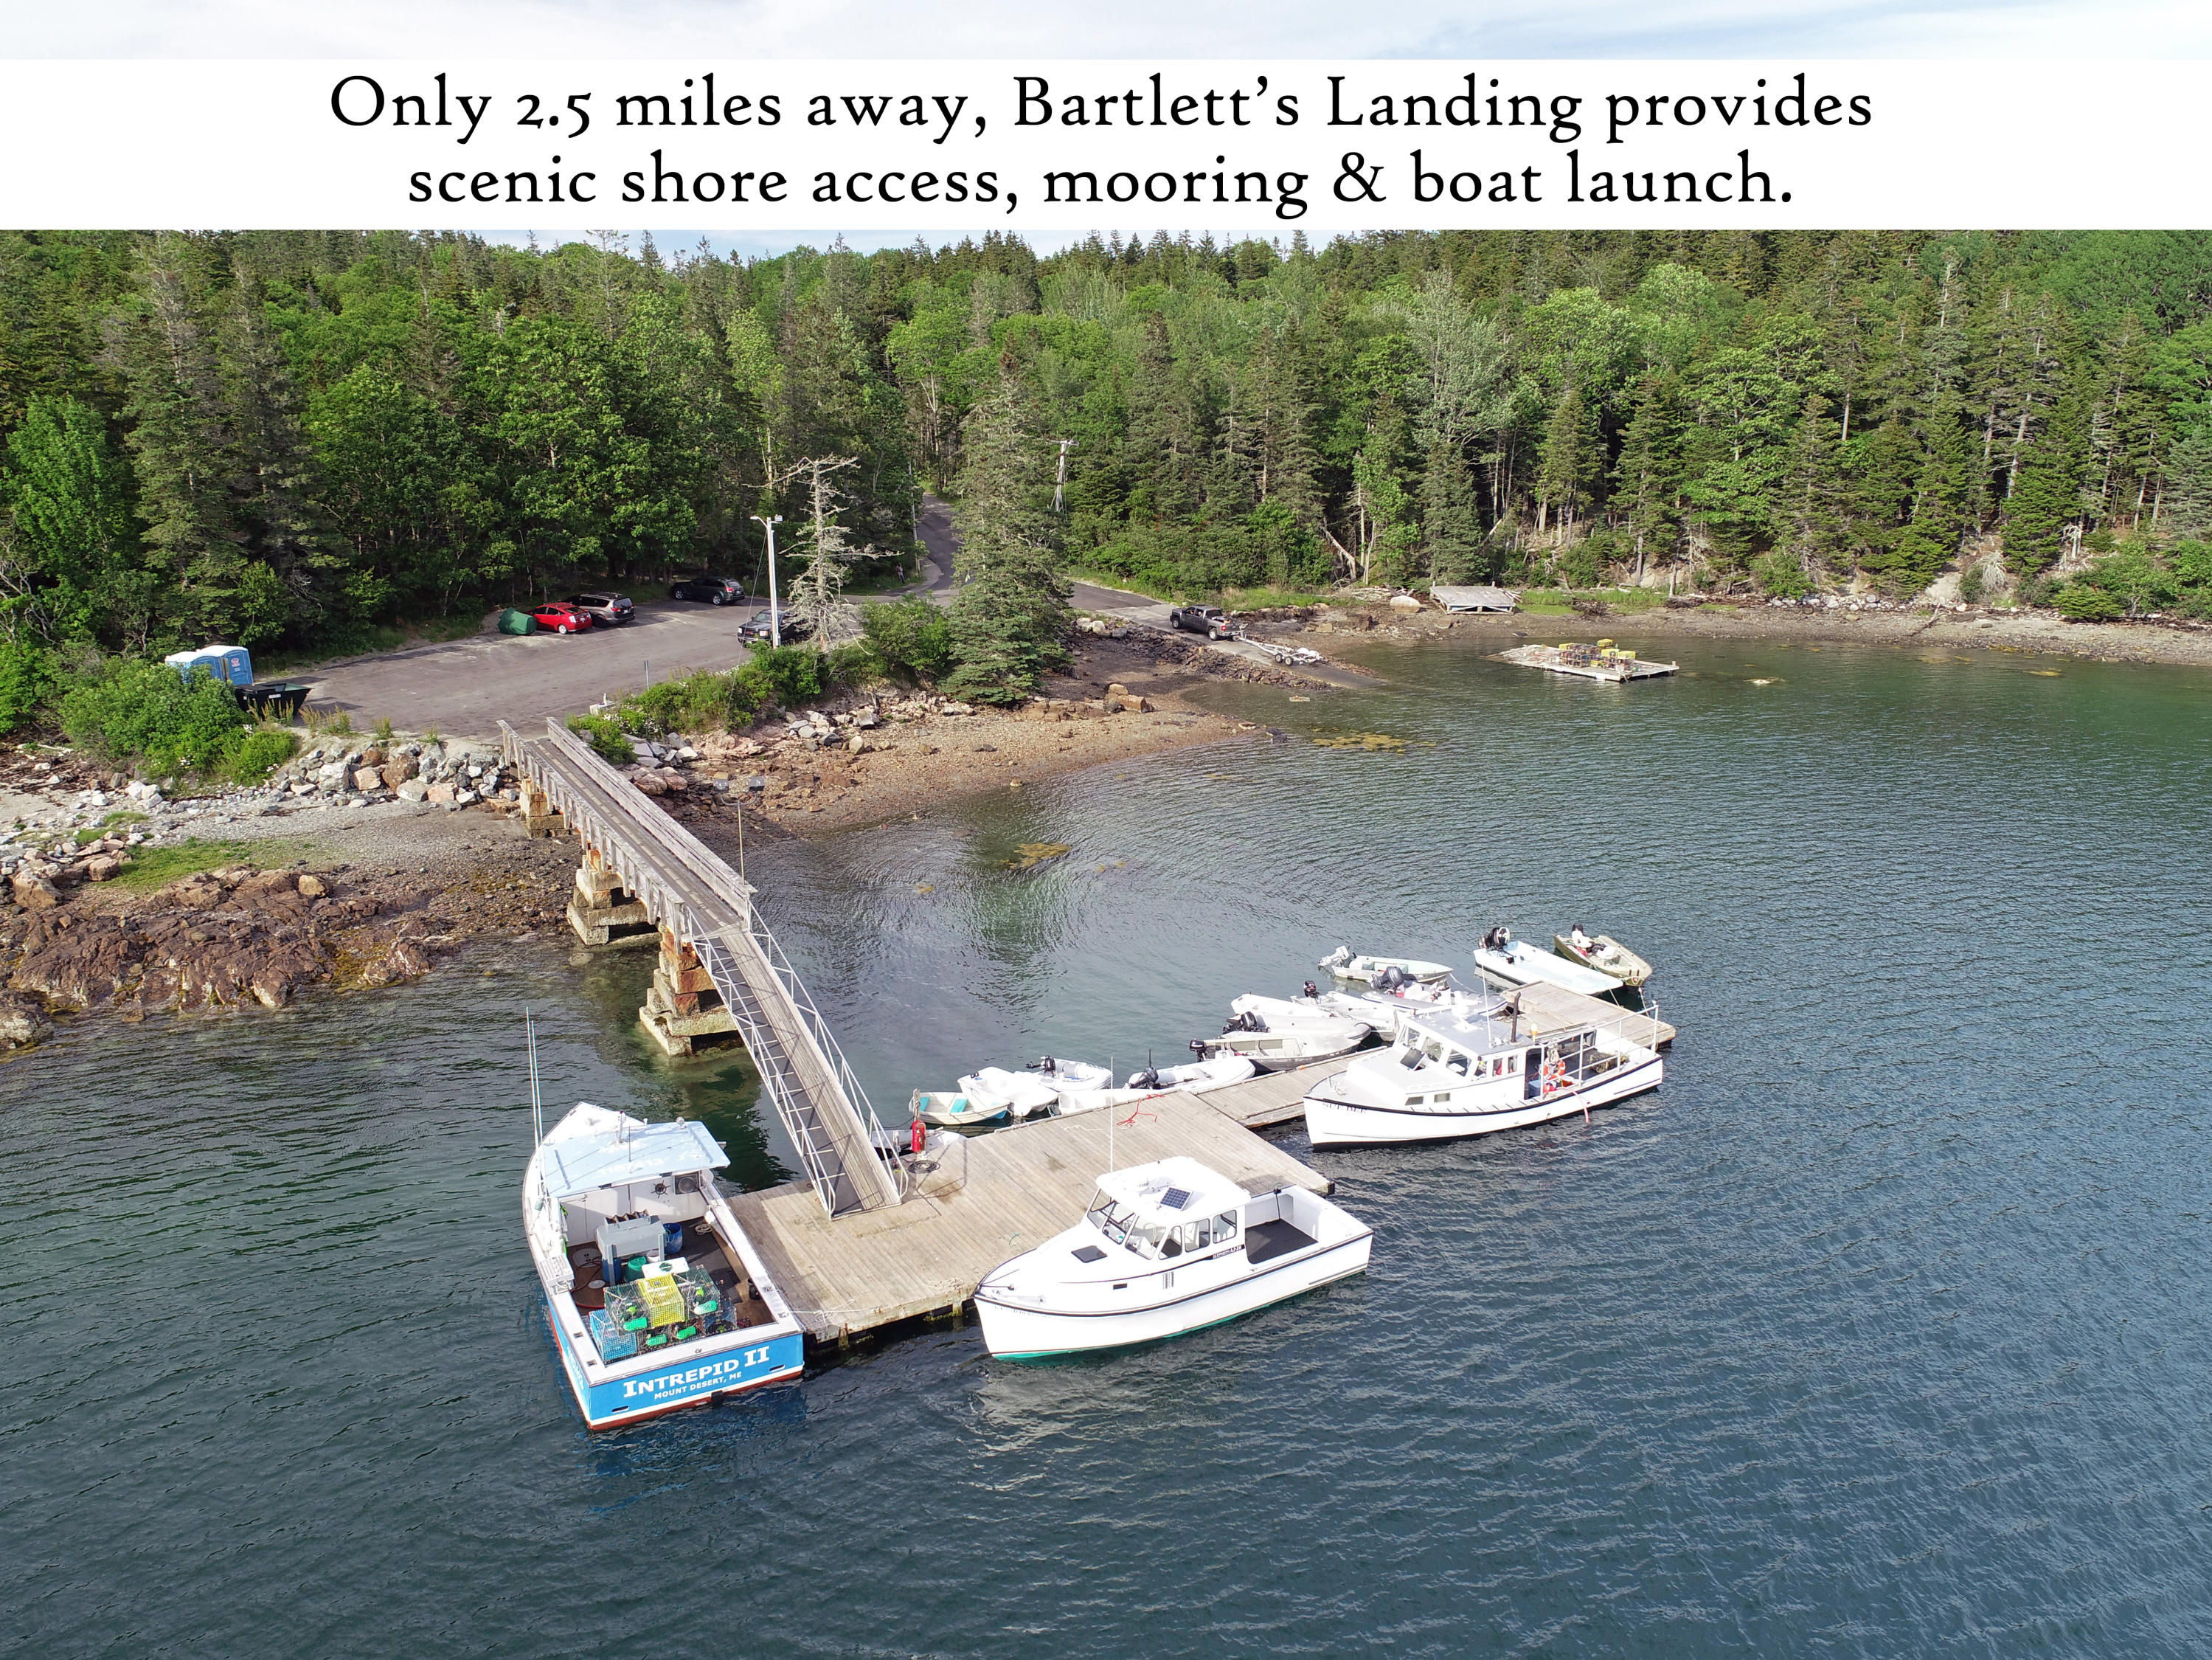 Bartlett's Landing 4, label